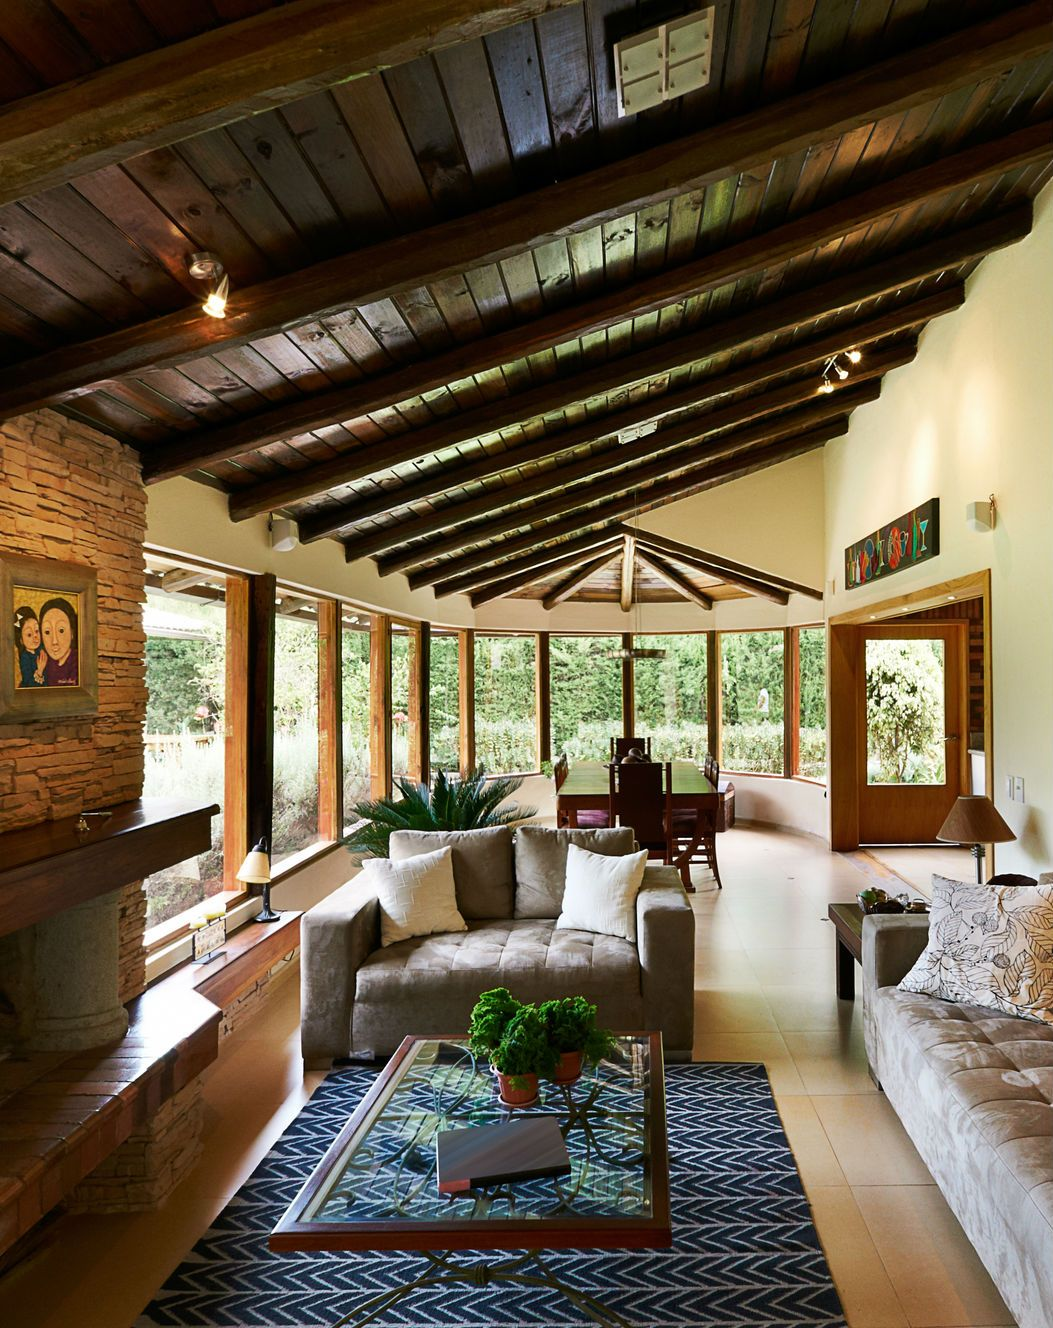 Rustic Living Room Ideas To Make Your Place Look Cozier